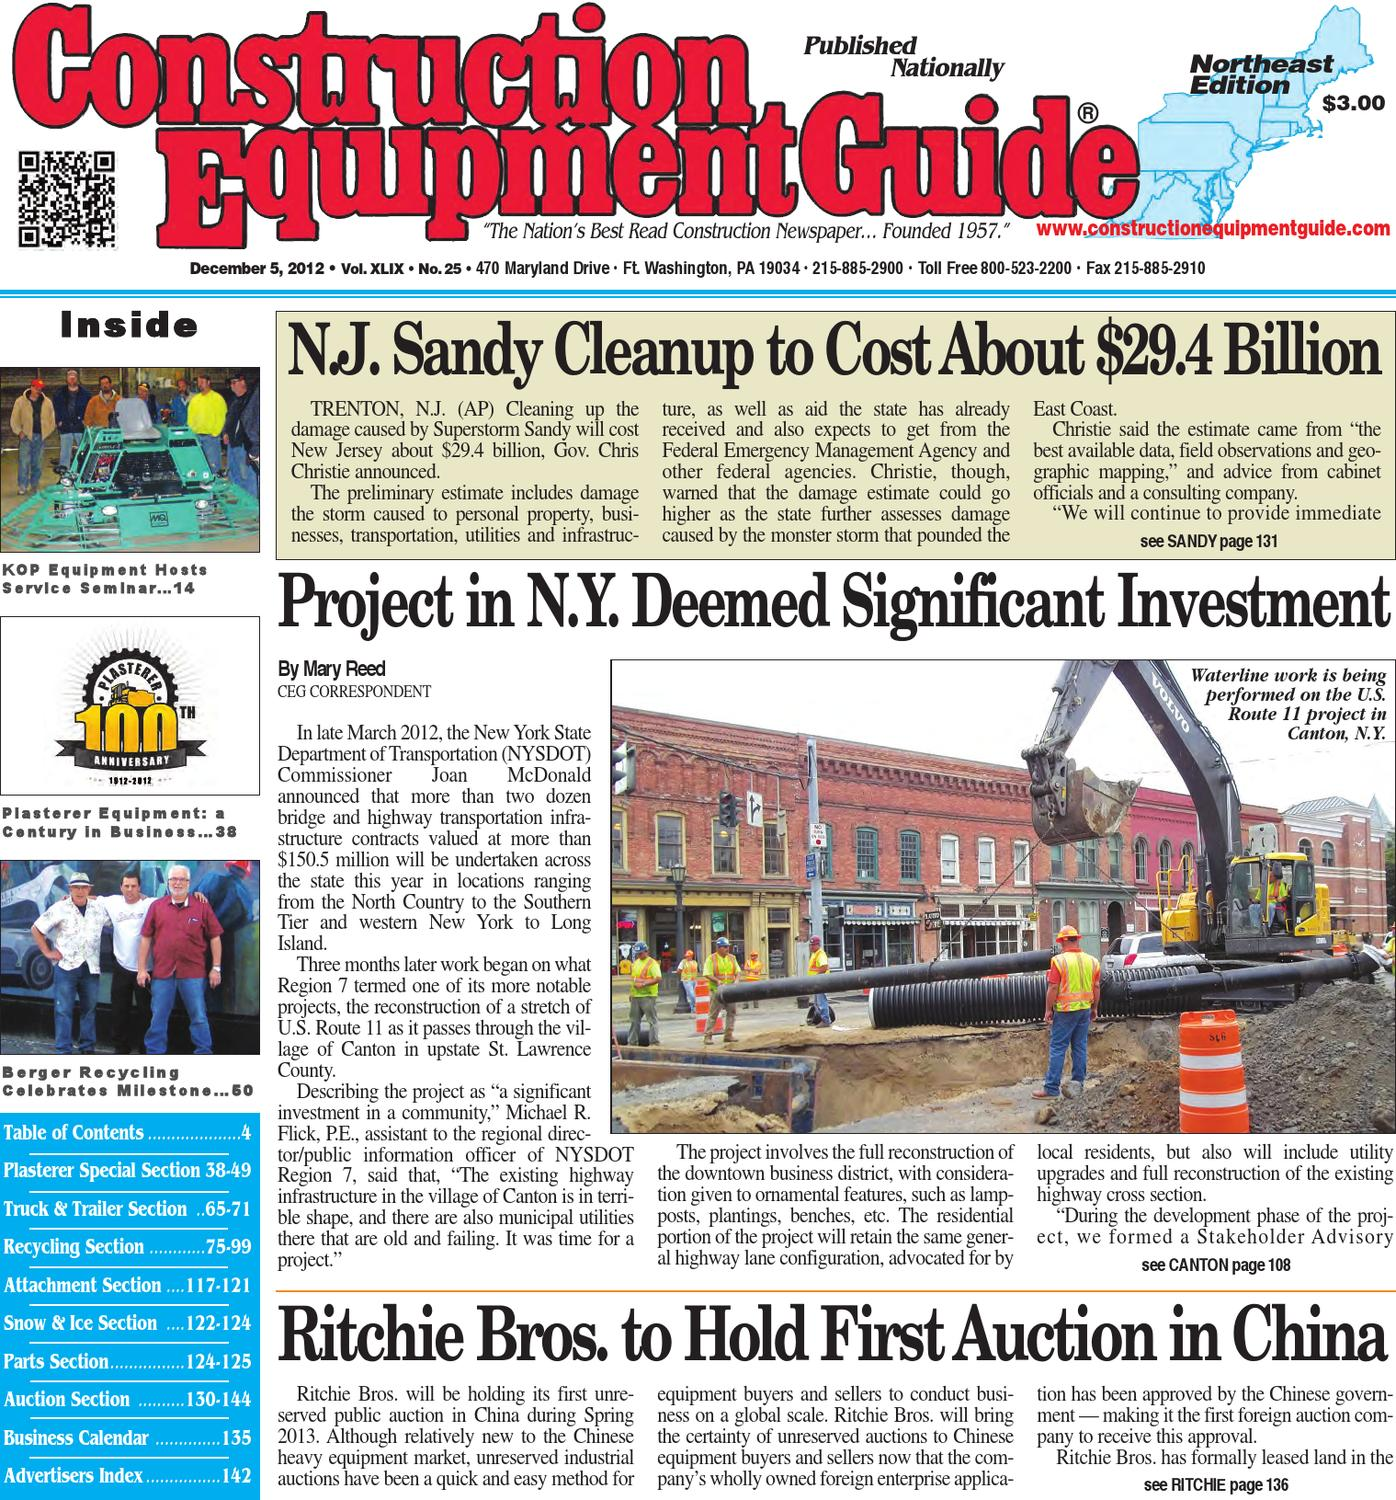 Northeast 25 2012 By Construction Equipment Guide Issuu Circuit Breaker Lockout Csafe Fabtech Id Products